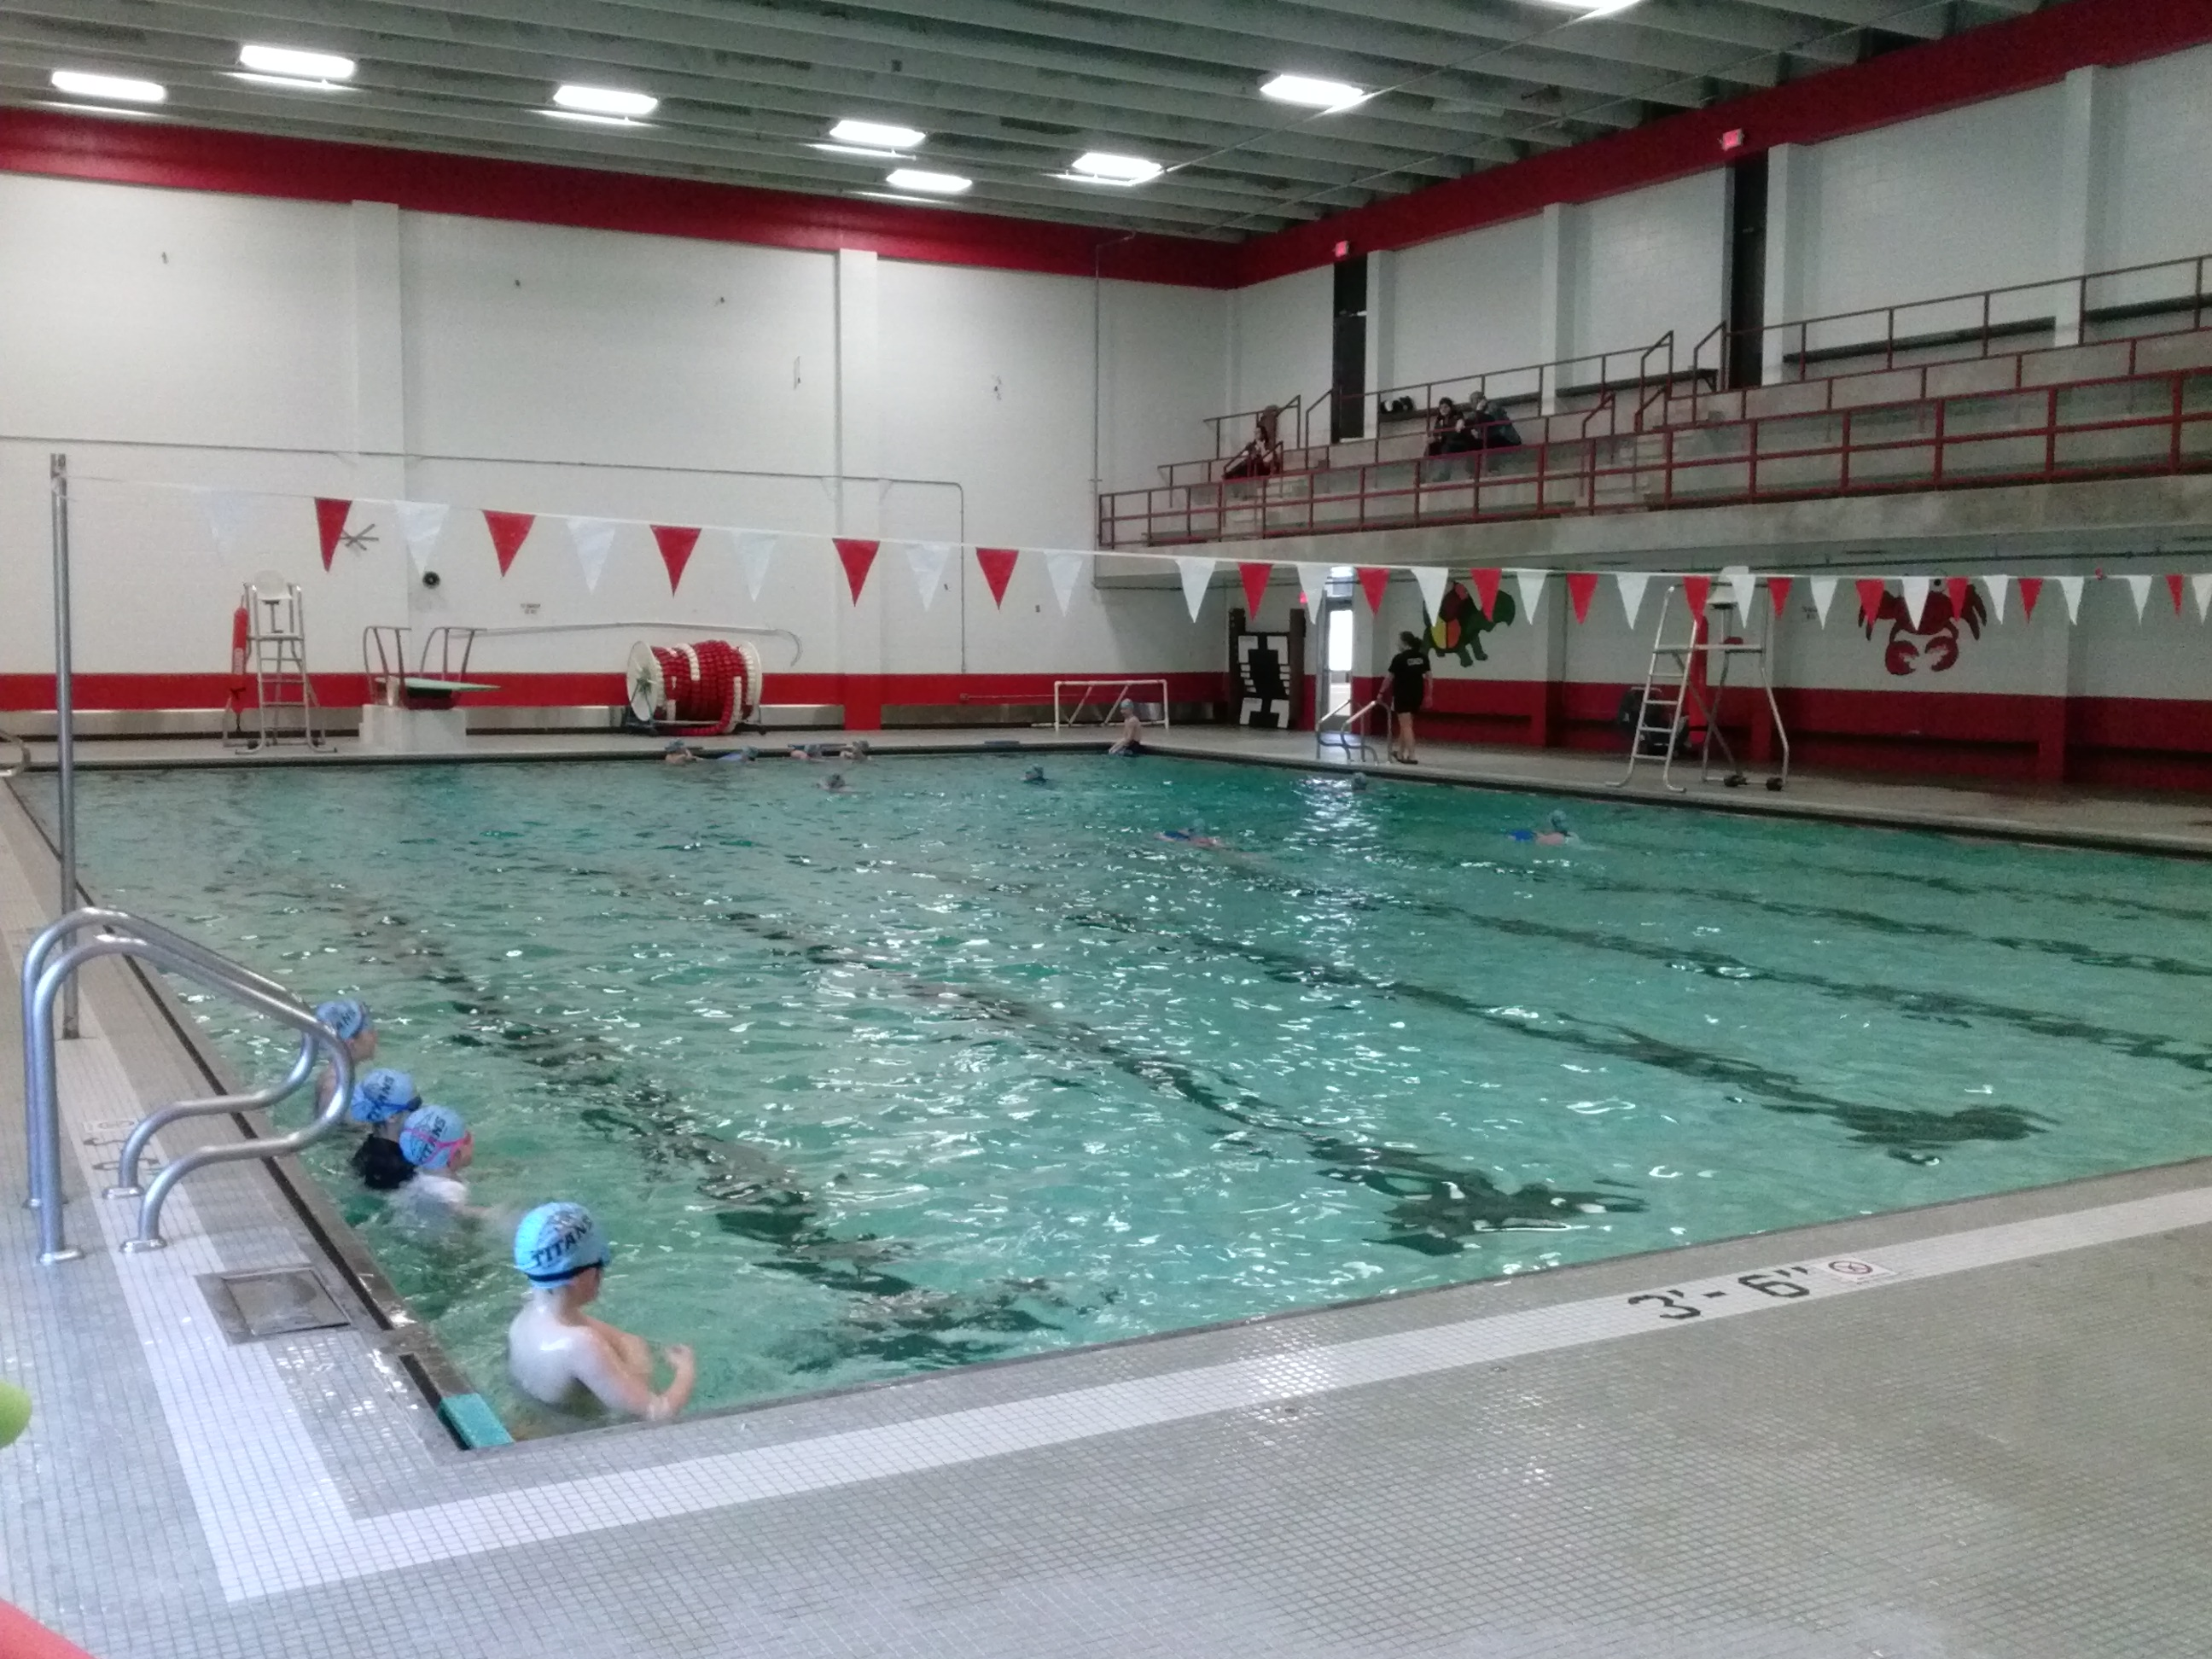 Indoor School Swimming Pool aquatics - swim lessons, aqua fitness, fun swim events - class